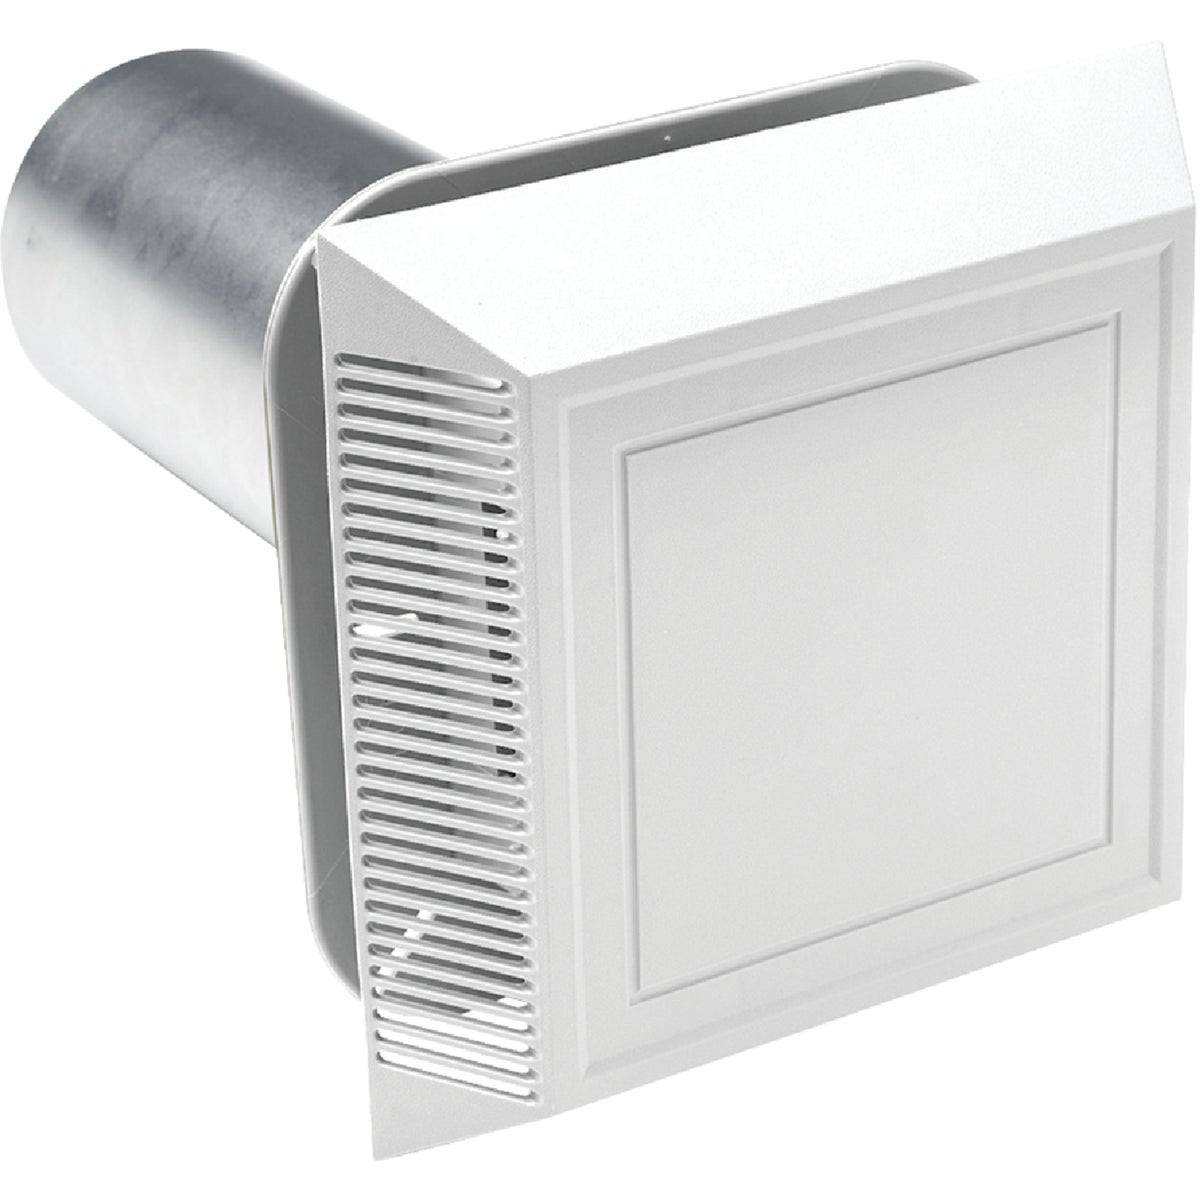 WHITE SOFFIT INTAKE VENT - INTVENT PW by Alcoa Home Exteriors